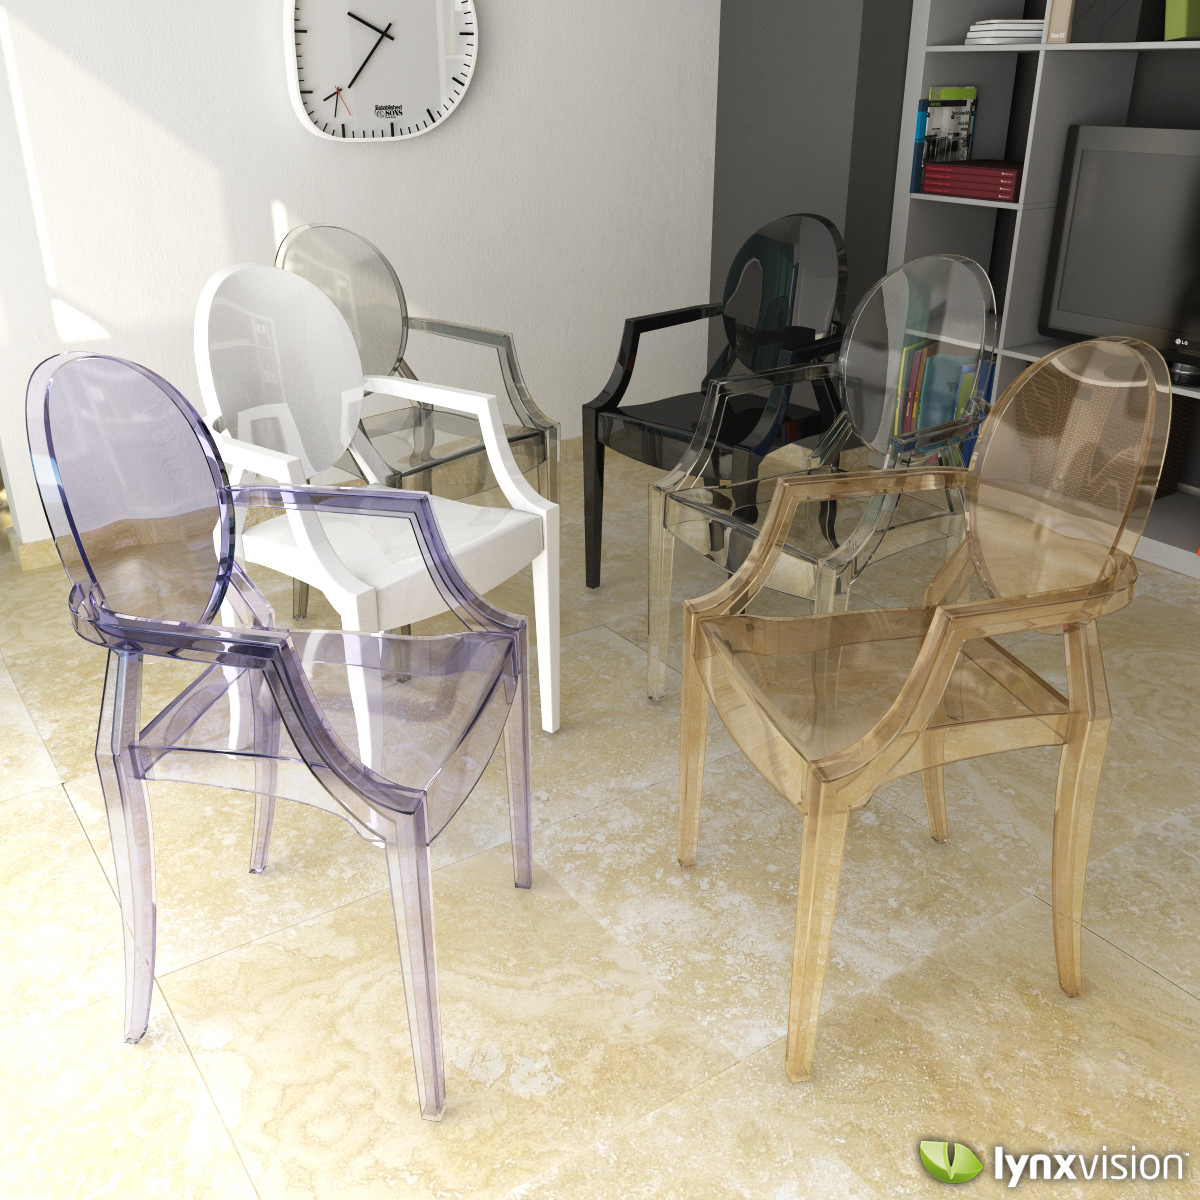 louis ghost armchair by philippe starck 3d model max obj 3ds fbx. Black Bedroom Furniture Sets. Home Design Ideas